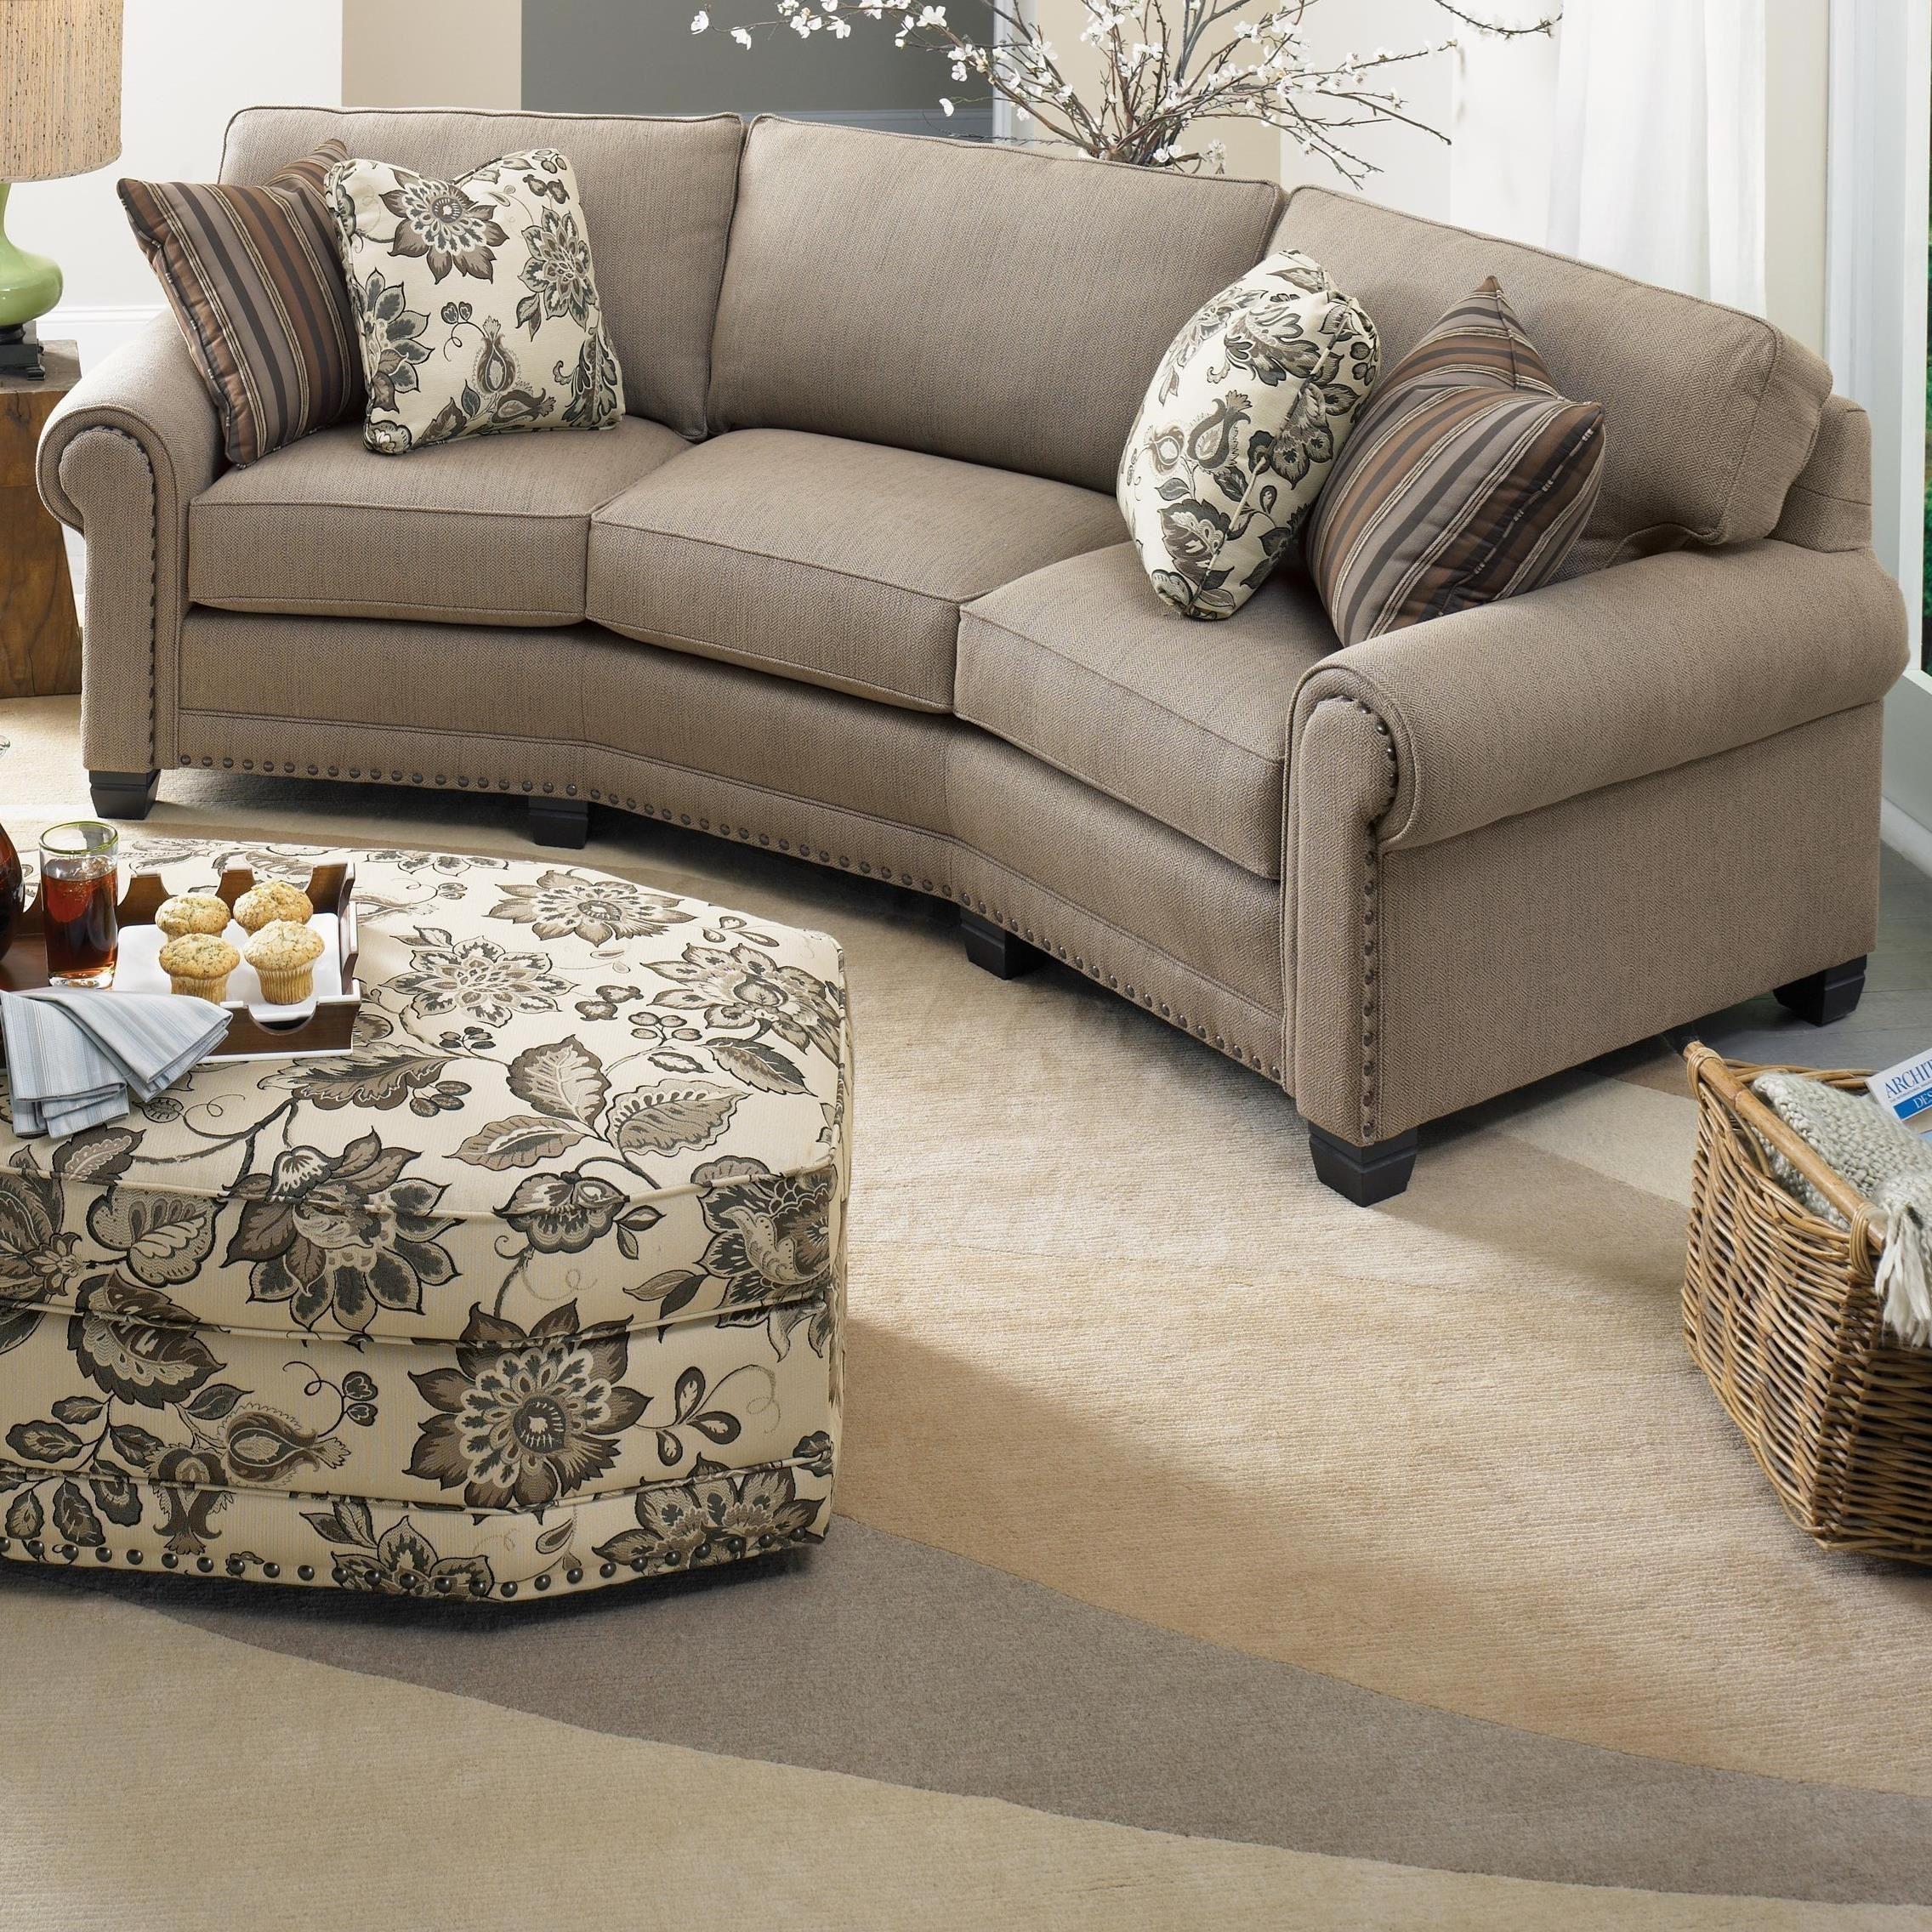 Superieur Smith Brothers 393 Traditional Conversation Sofa With Nailhead Trim